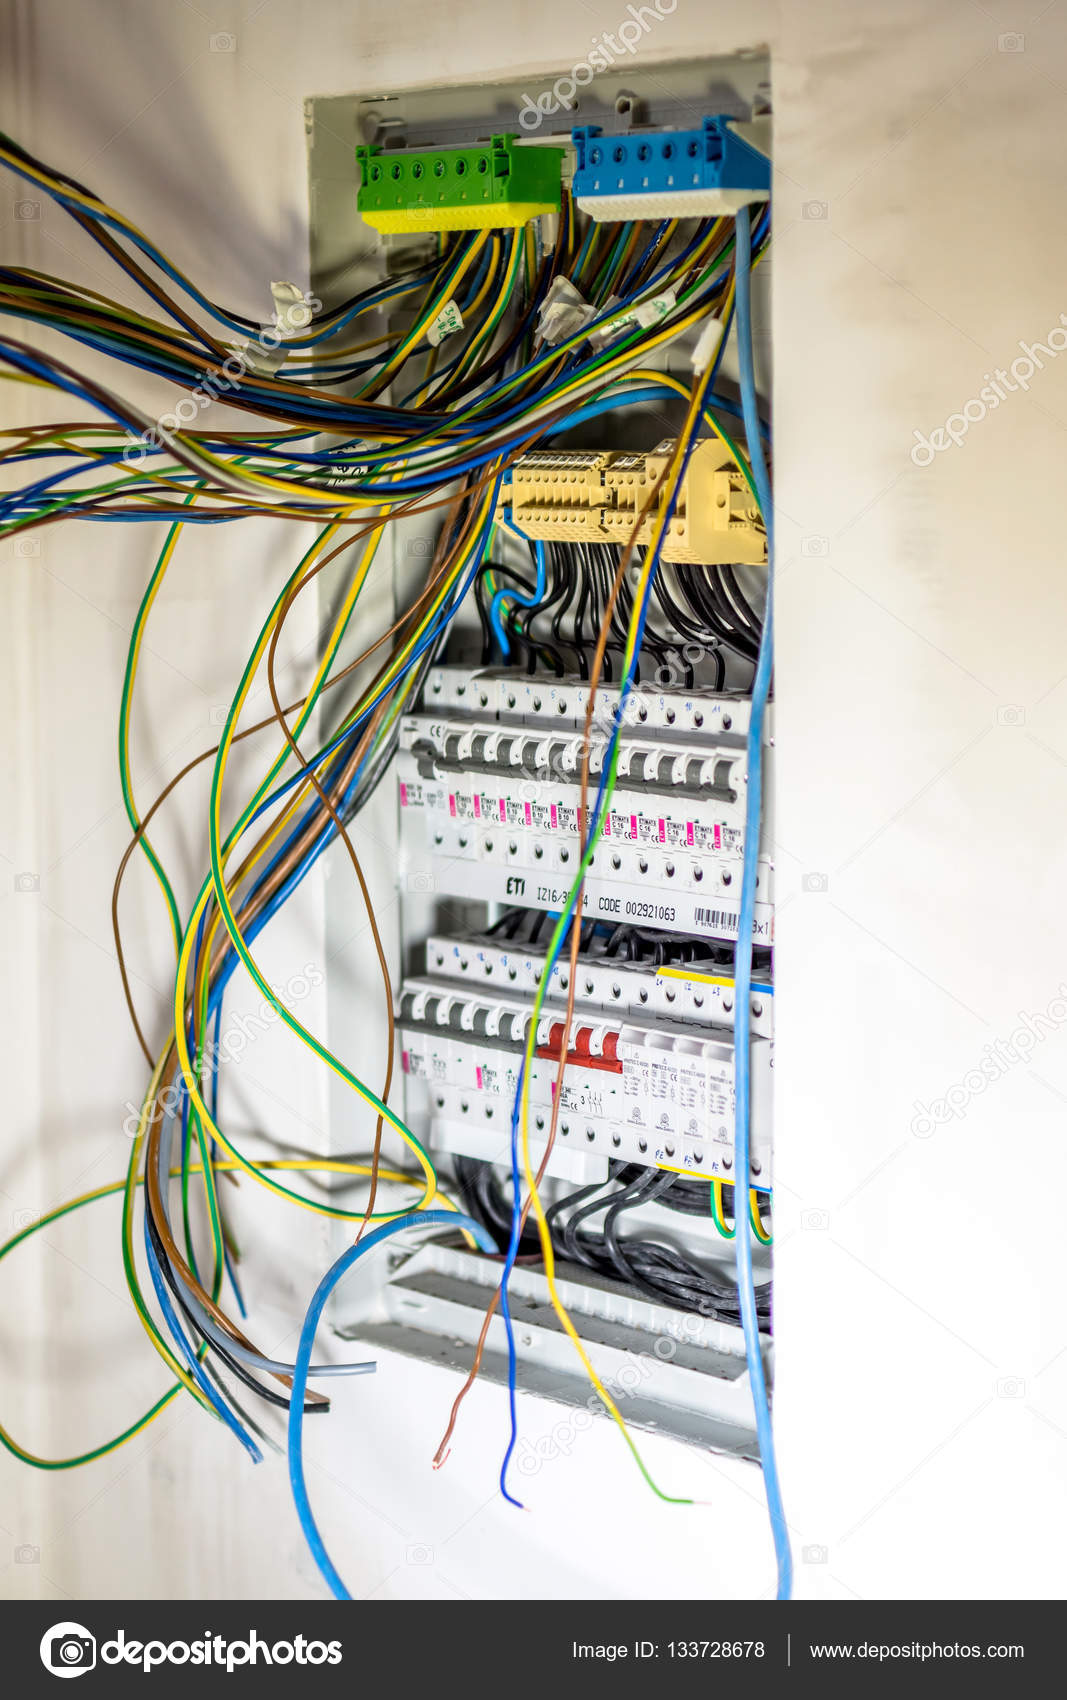 hight resolution of automatic fuse switches circuit breaker and wiring terminal in cabinet photo by fotovincek